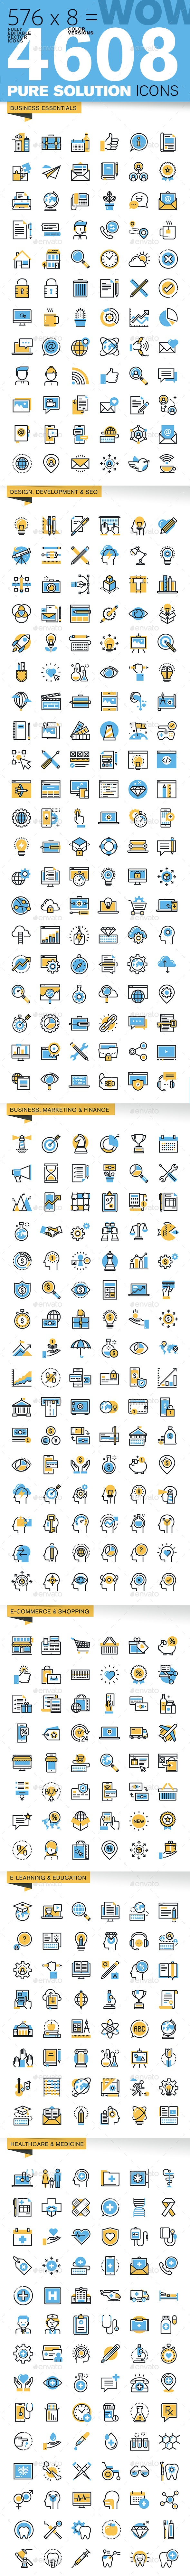 WOW Thin Line Flat Design Icons Bundle - Icons